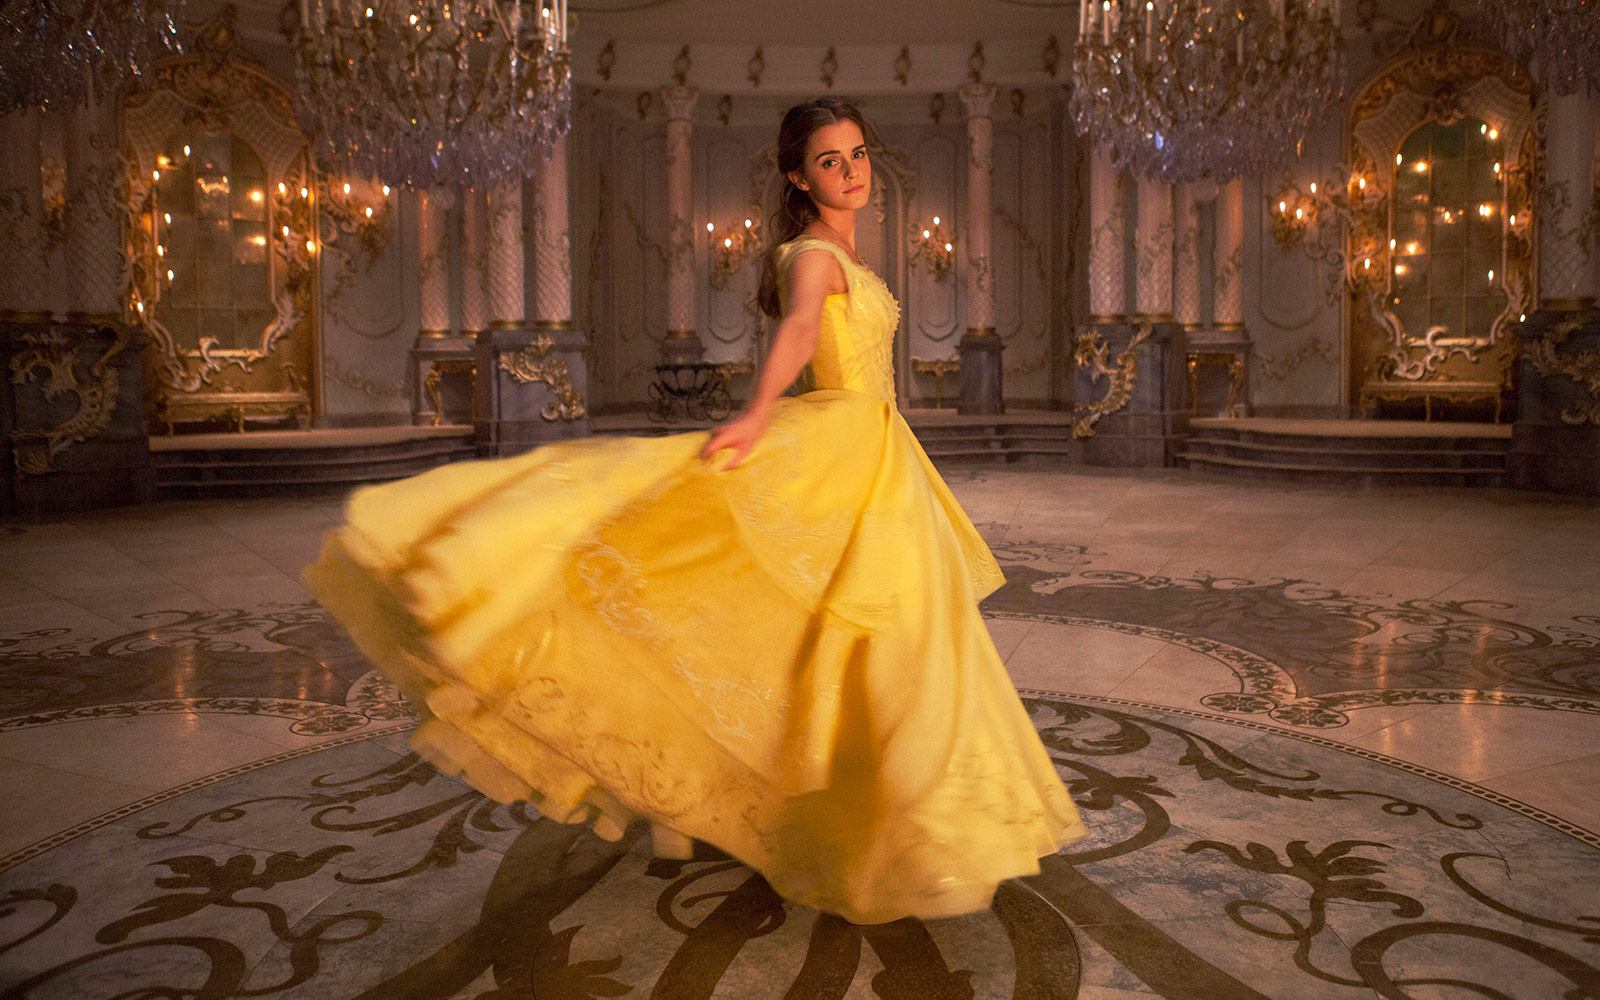 Beauty and the Beast Emma Watson Disney film